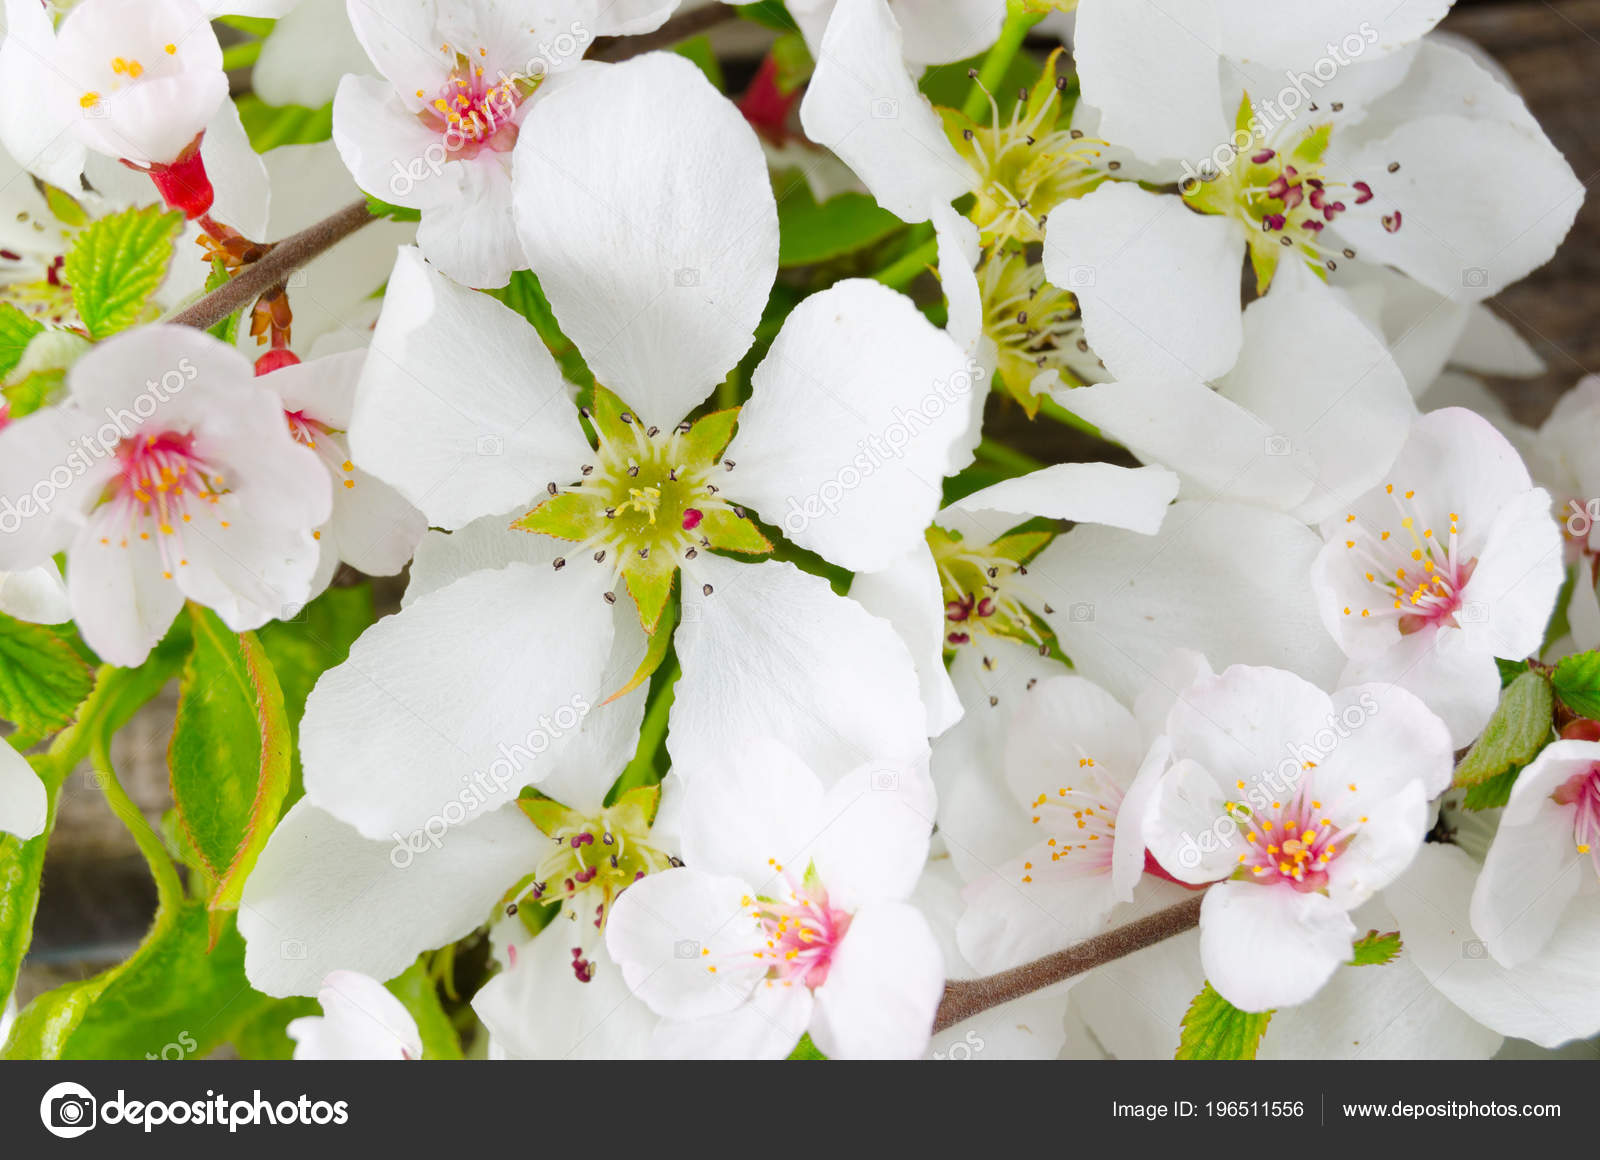 Apple Blossom Early Spring Beautiful White Flowers Close Stock